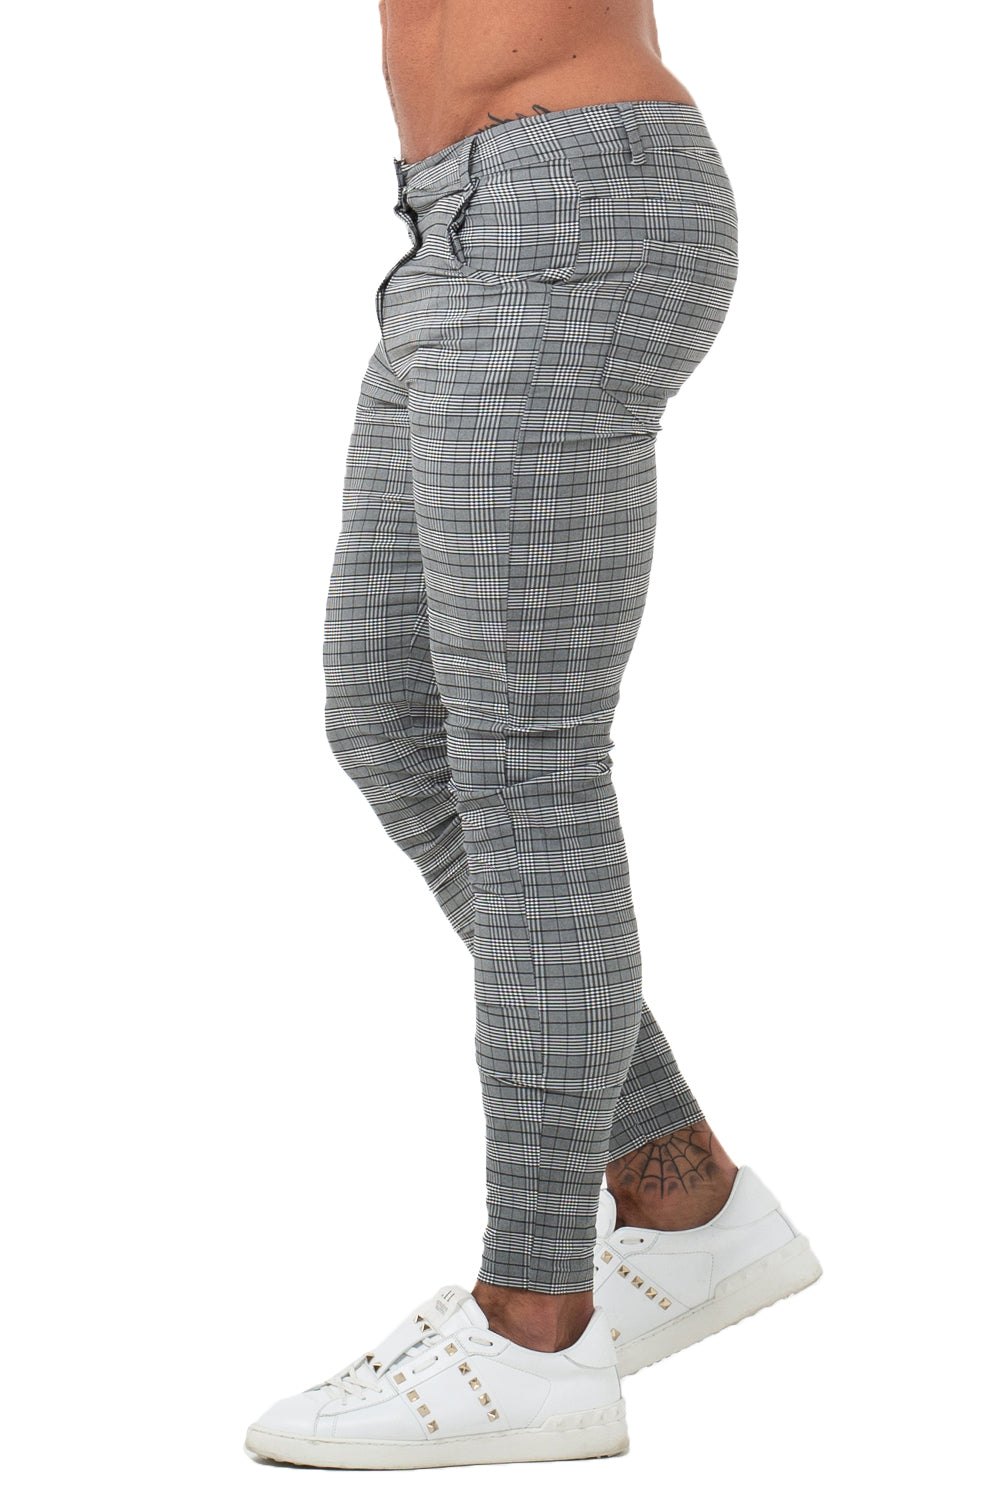 7360 Plaid Pattern Skinny Fit Chinos